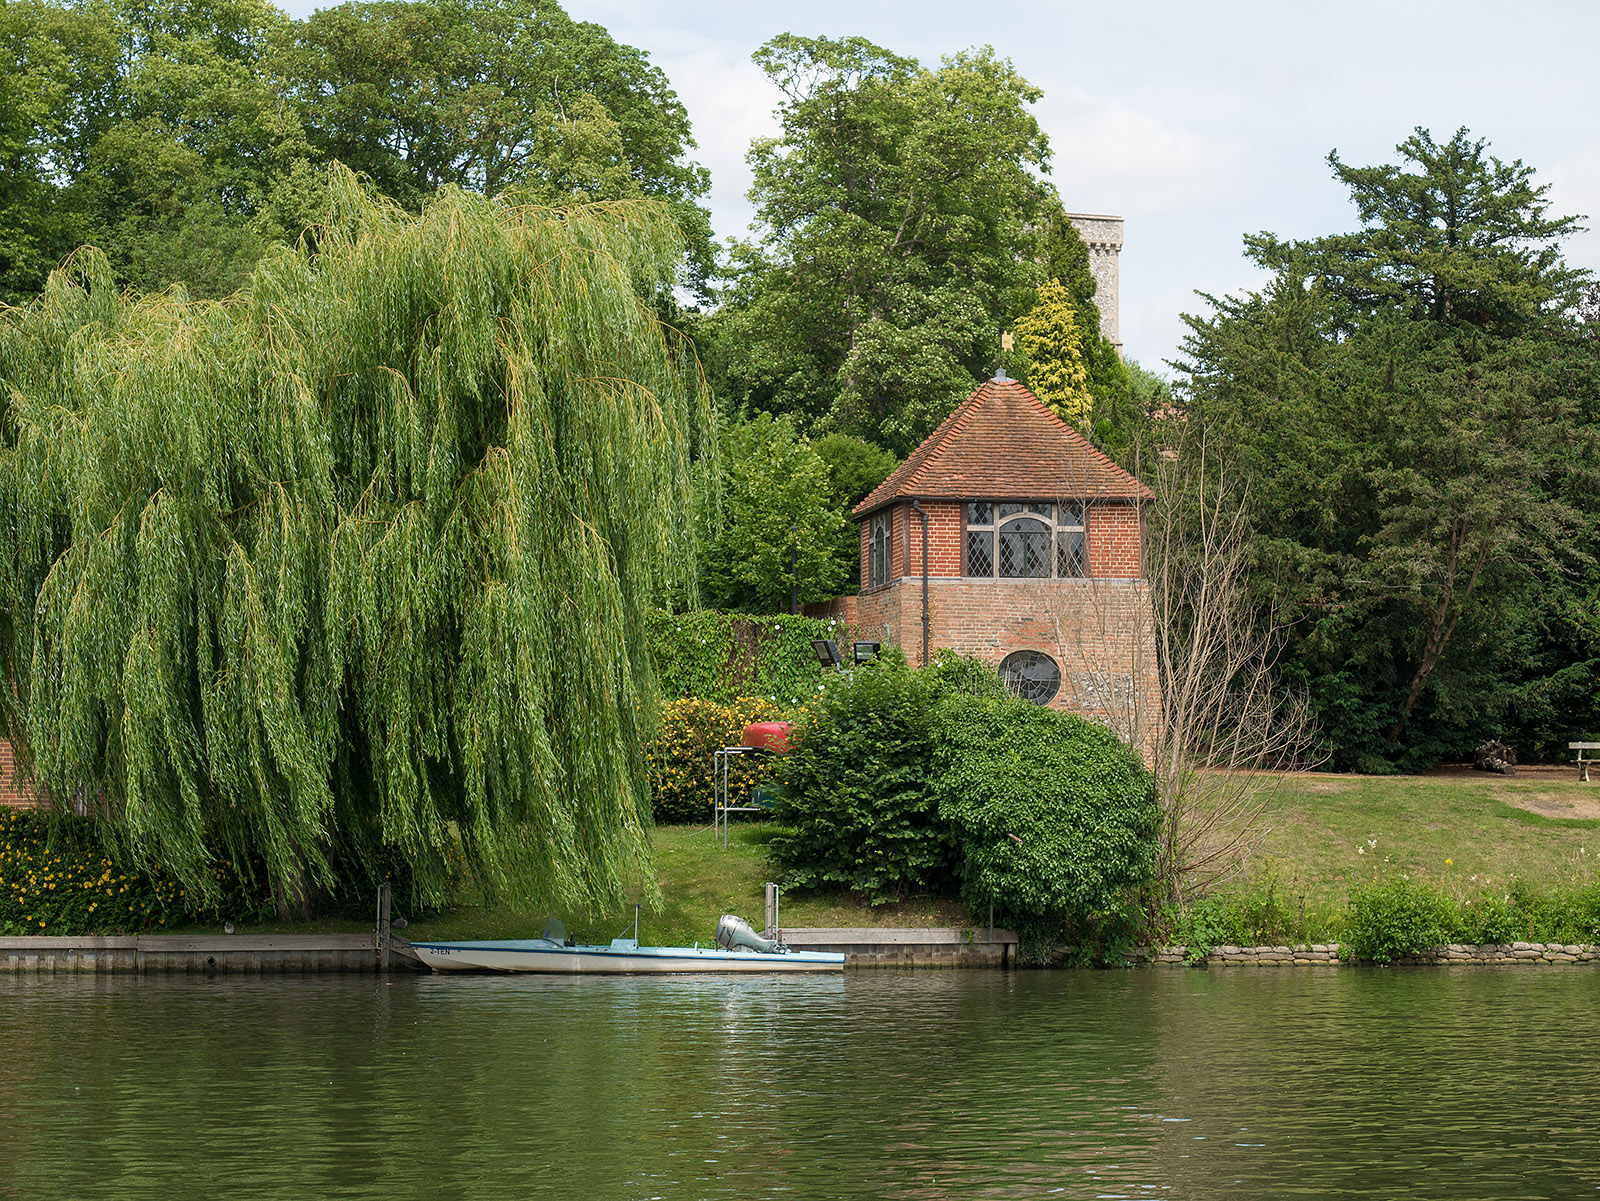 House across the river at Caversham